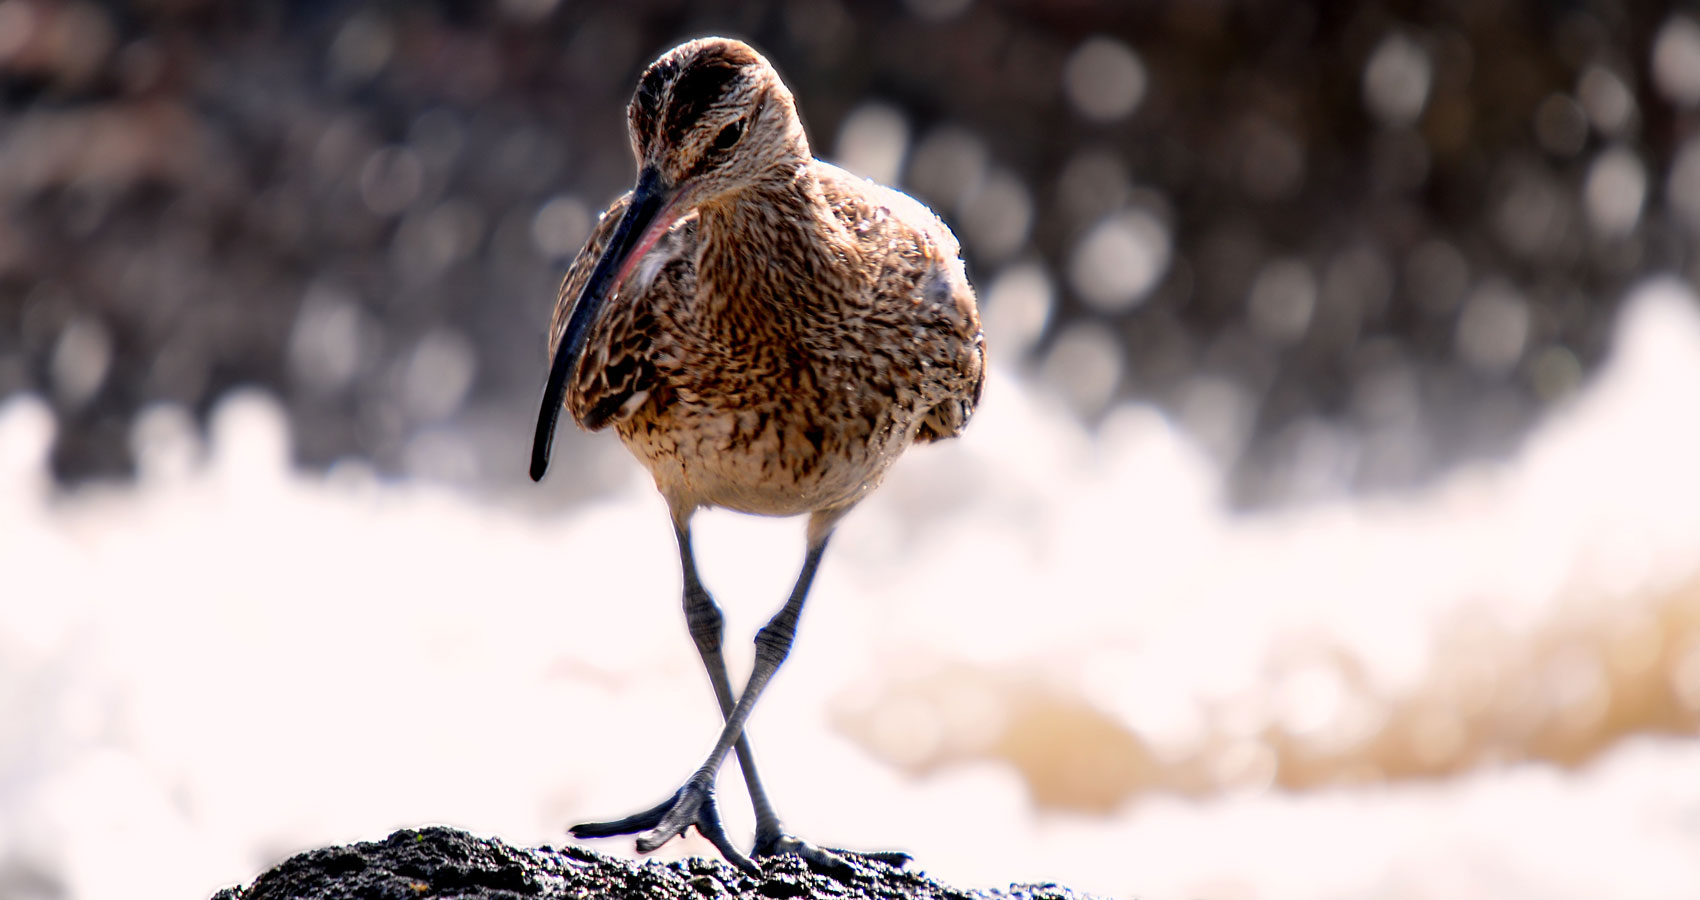 Curlews, micropoetry written by Polly Oliver at Spillwords.com